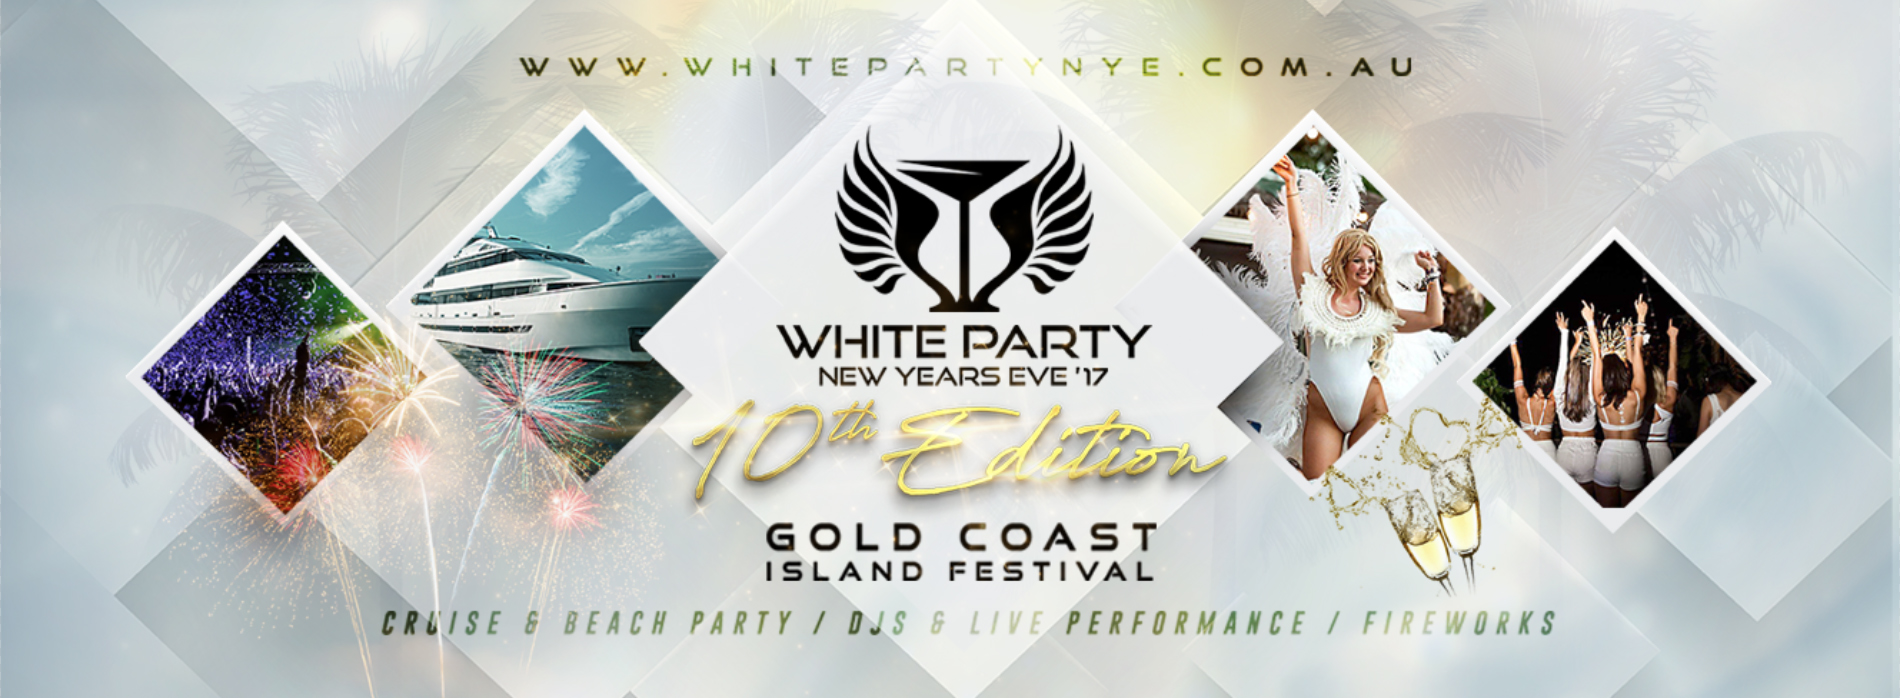 Tickets for White Party NYE 17 GoldCoast Island festival in Main Beach from Ticketbooth